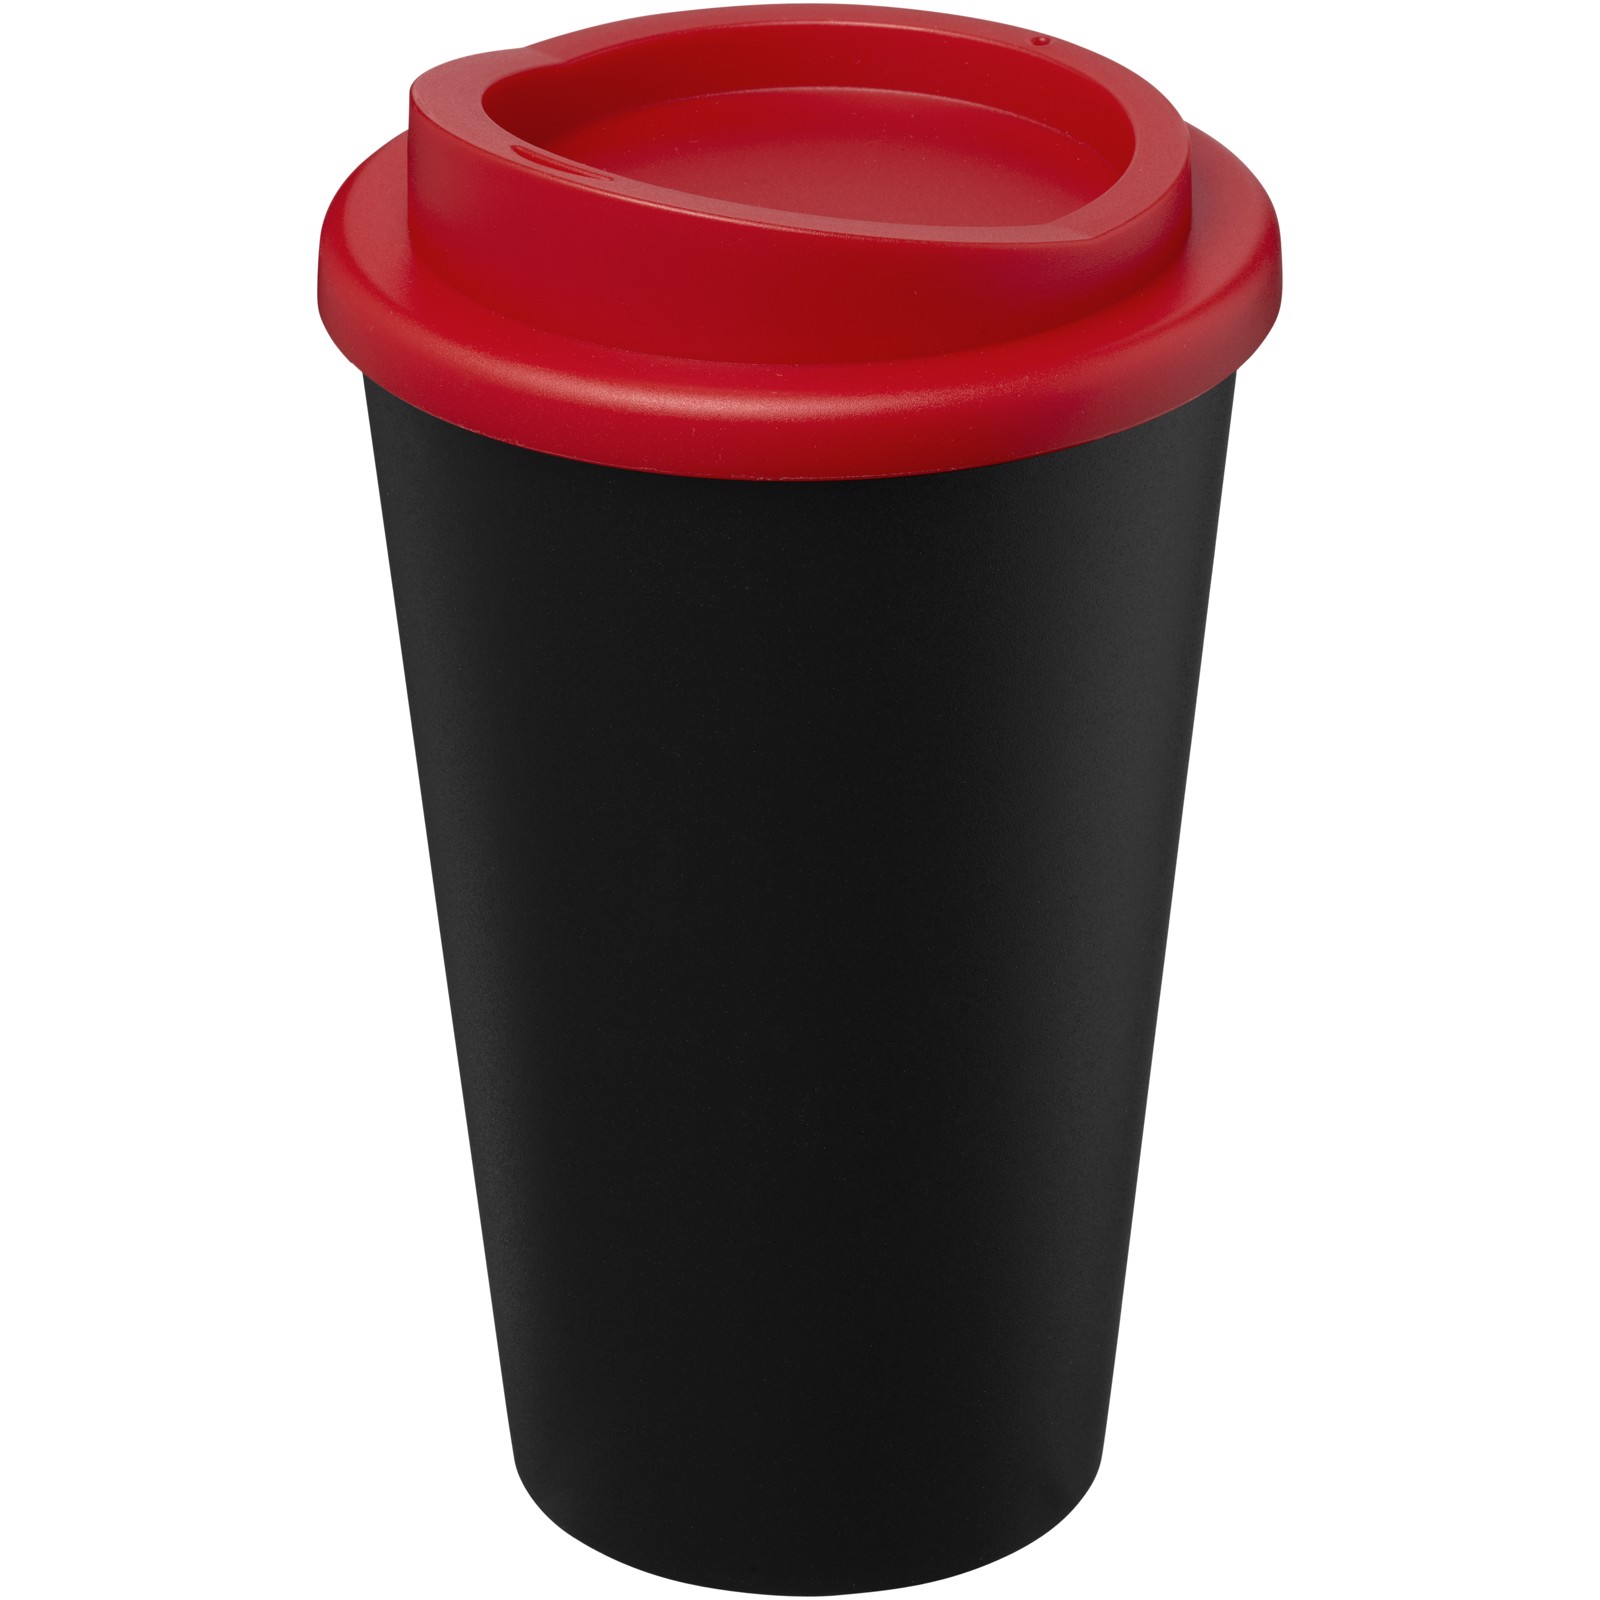 Americano Eco 350 ml recycled tumbler - Solid Black / Red